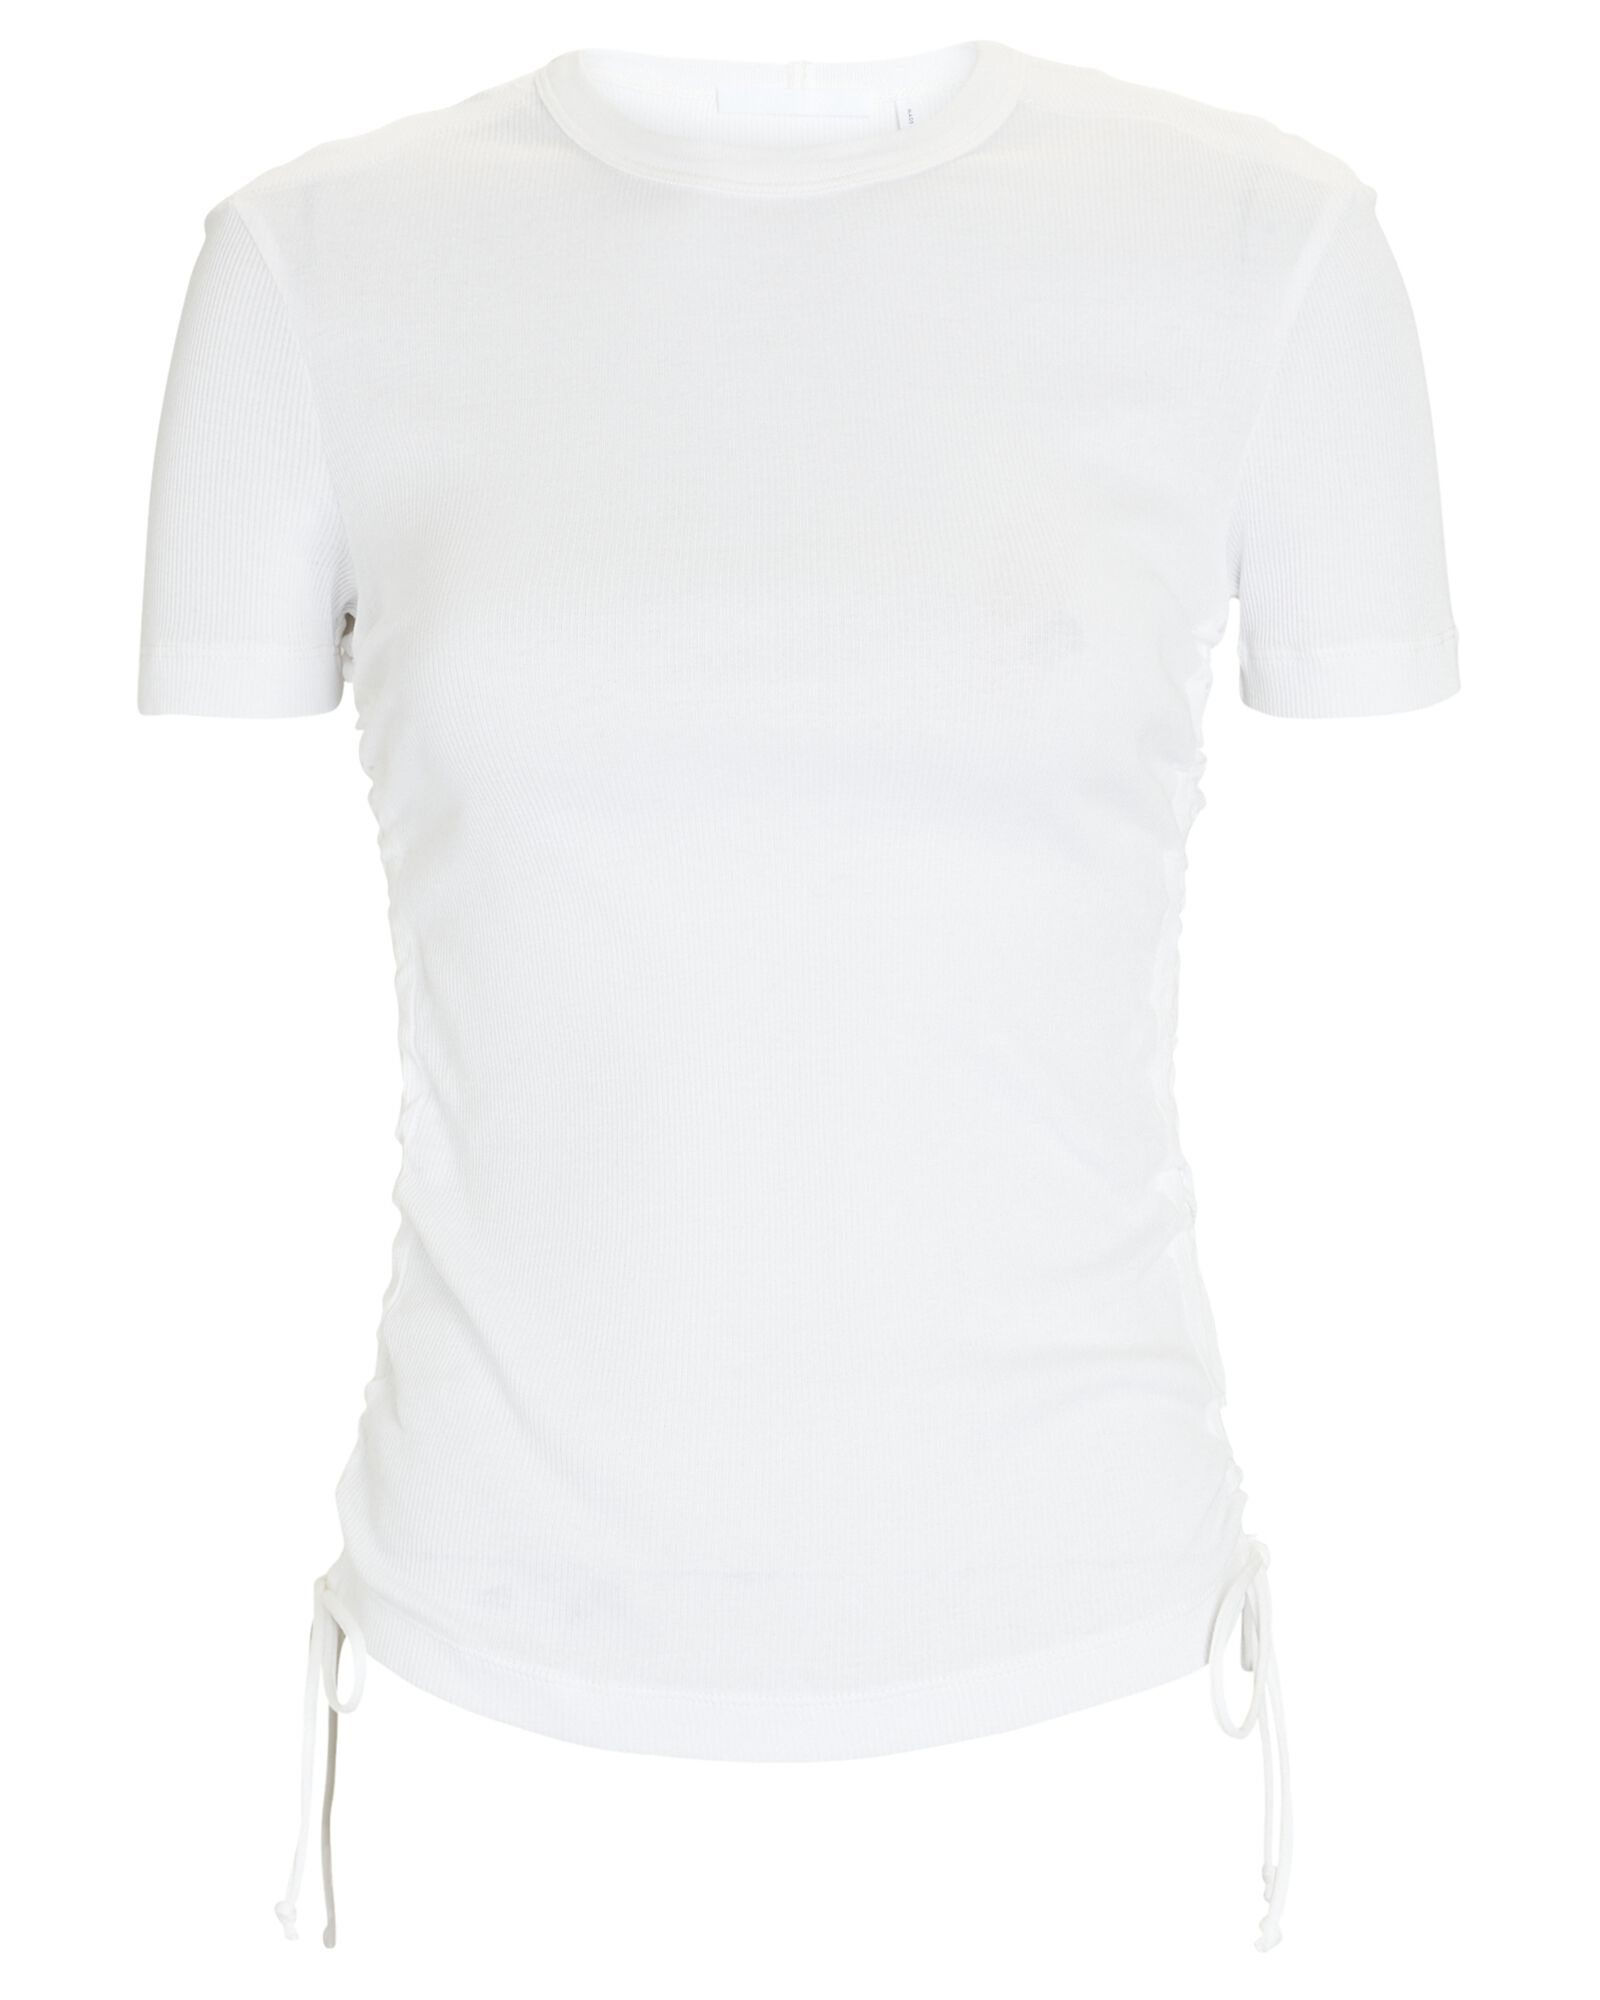 Double Rib Ruched Cotton T-Shirt, WHITE, hi-res